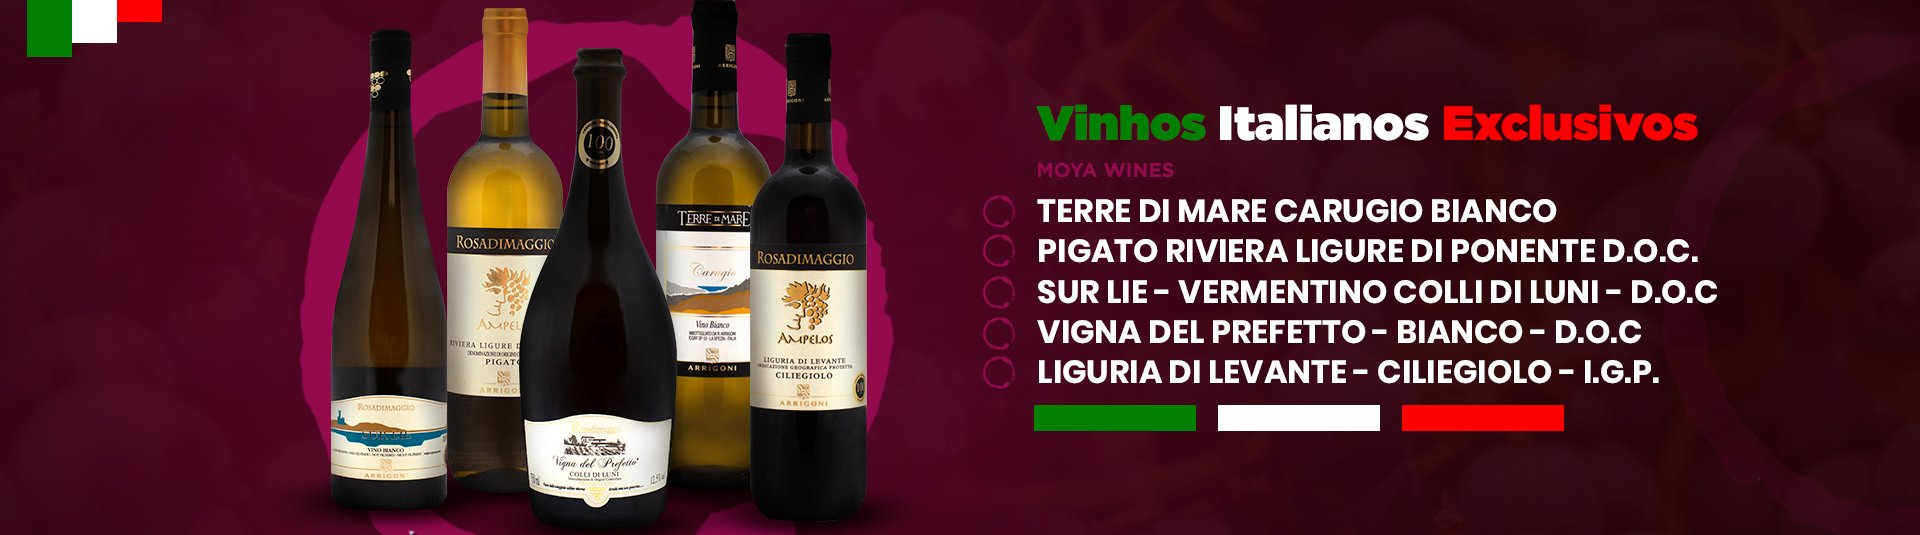 Vinhos Italianos Exclusivos